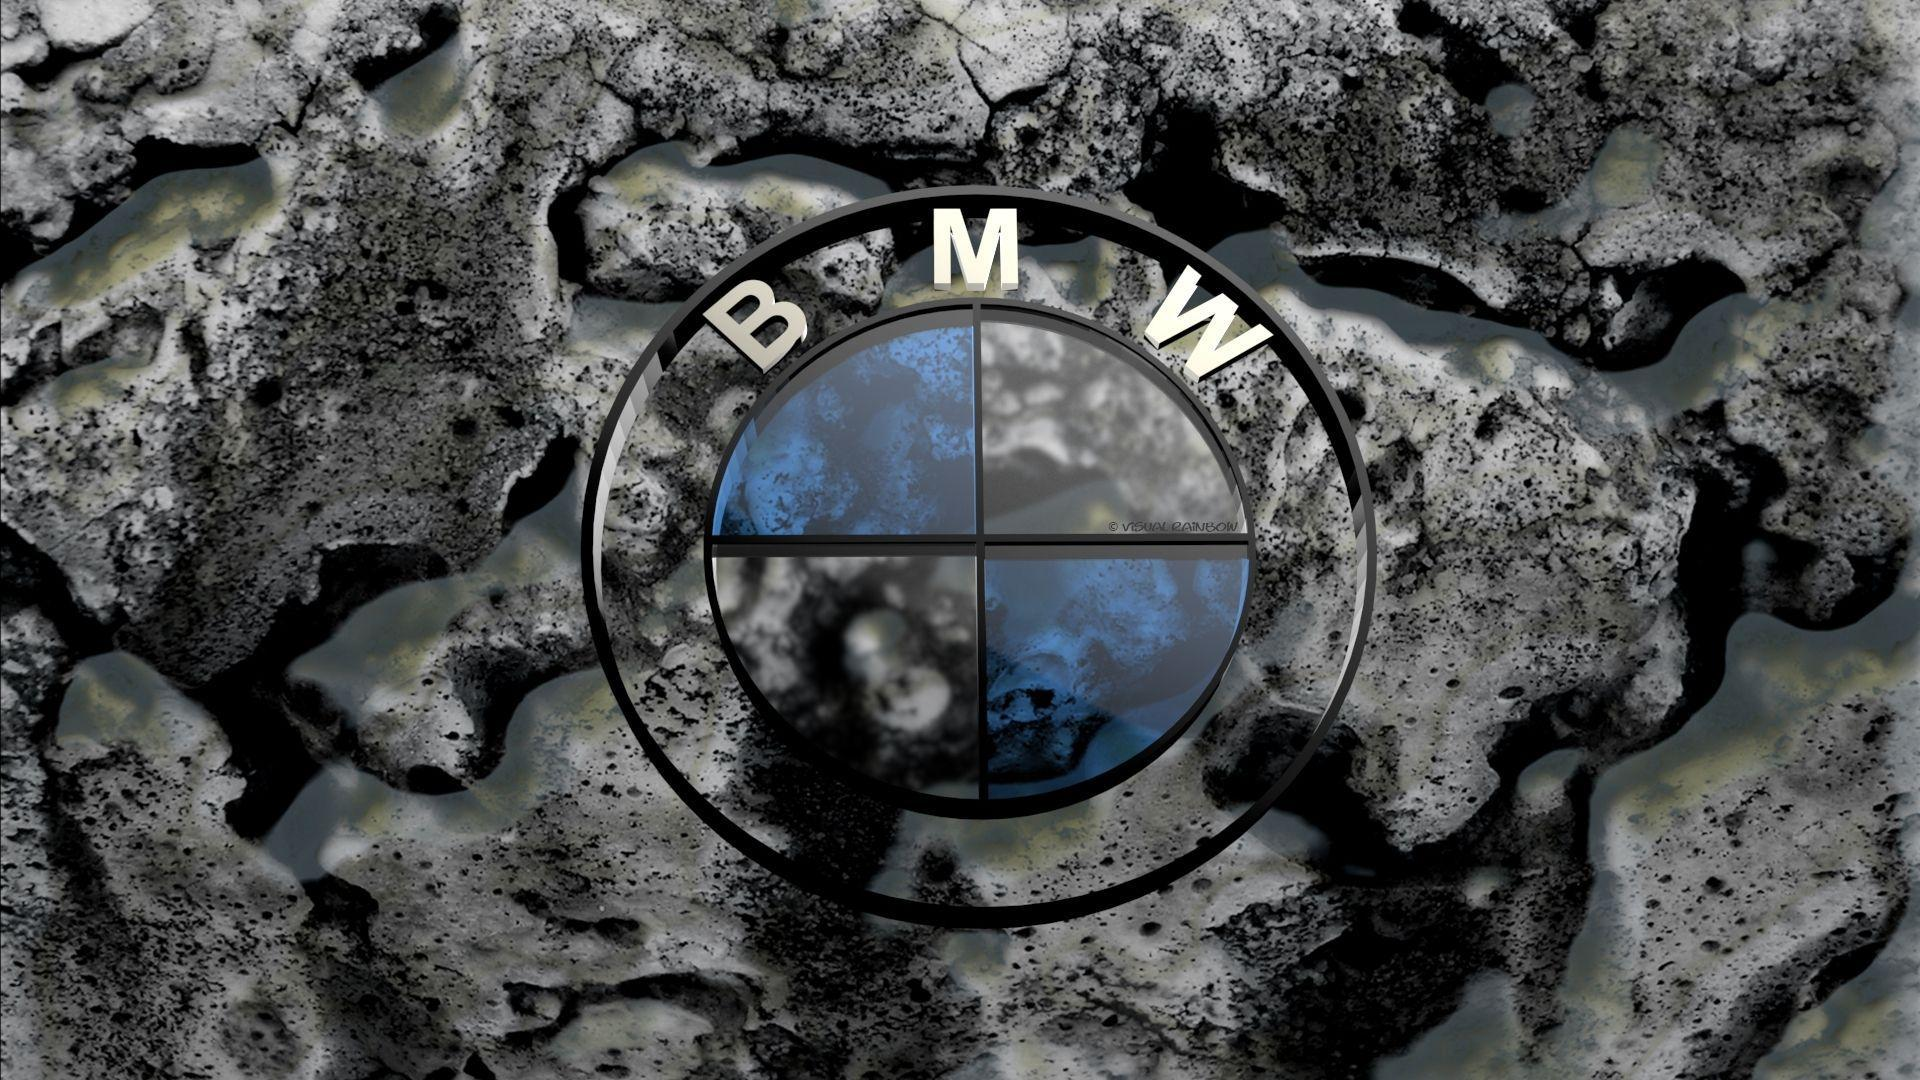 BMW Logo Wallpaper 1920x1080 - WallpaperSafari